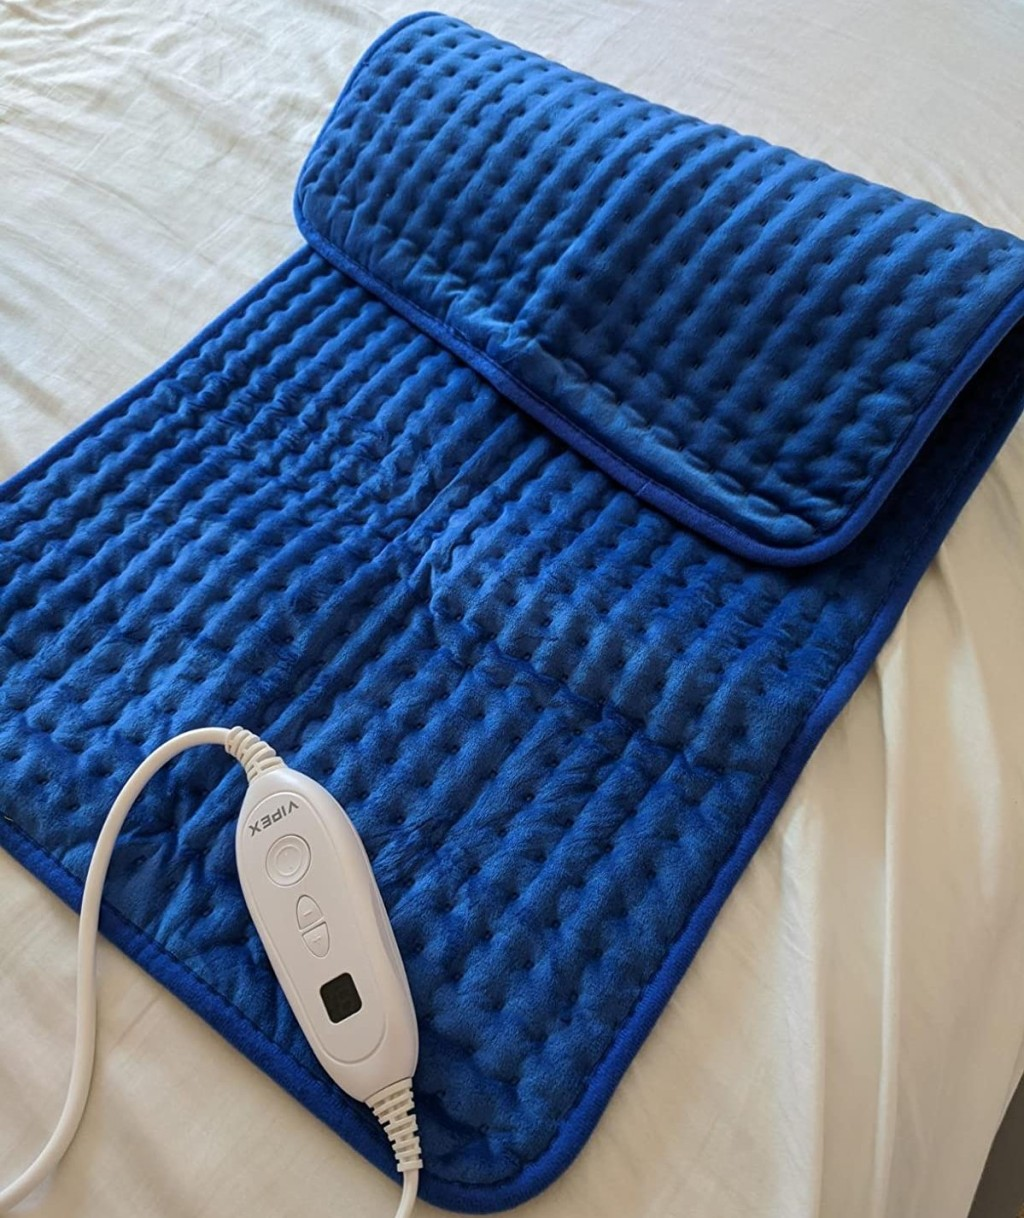 heating pad sitting on a bed